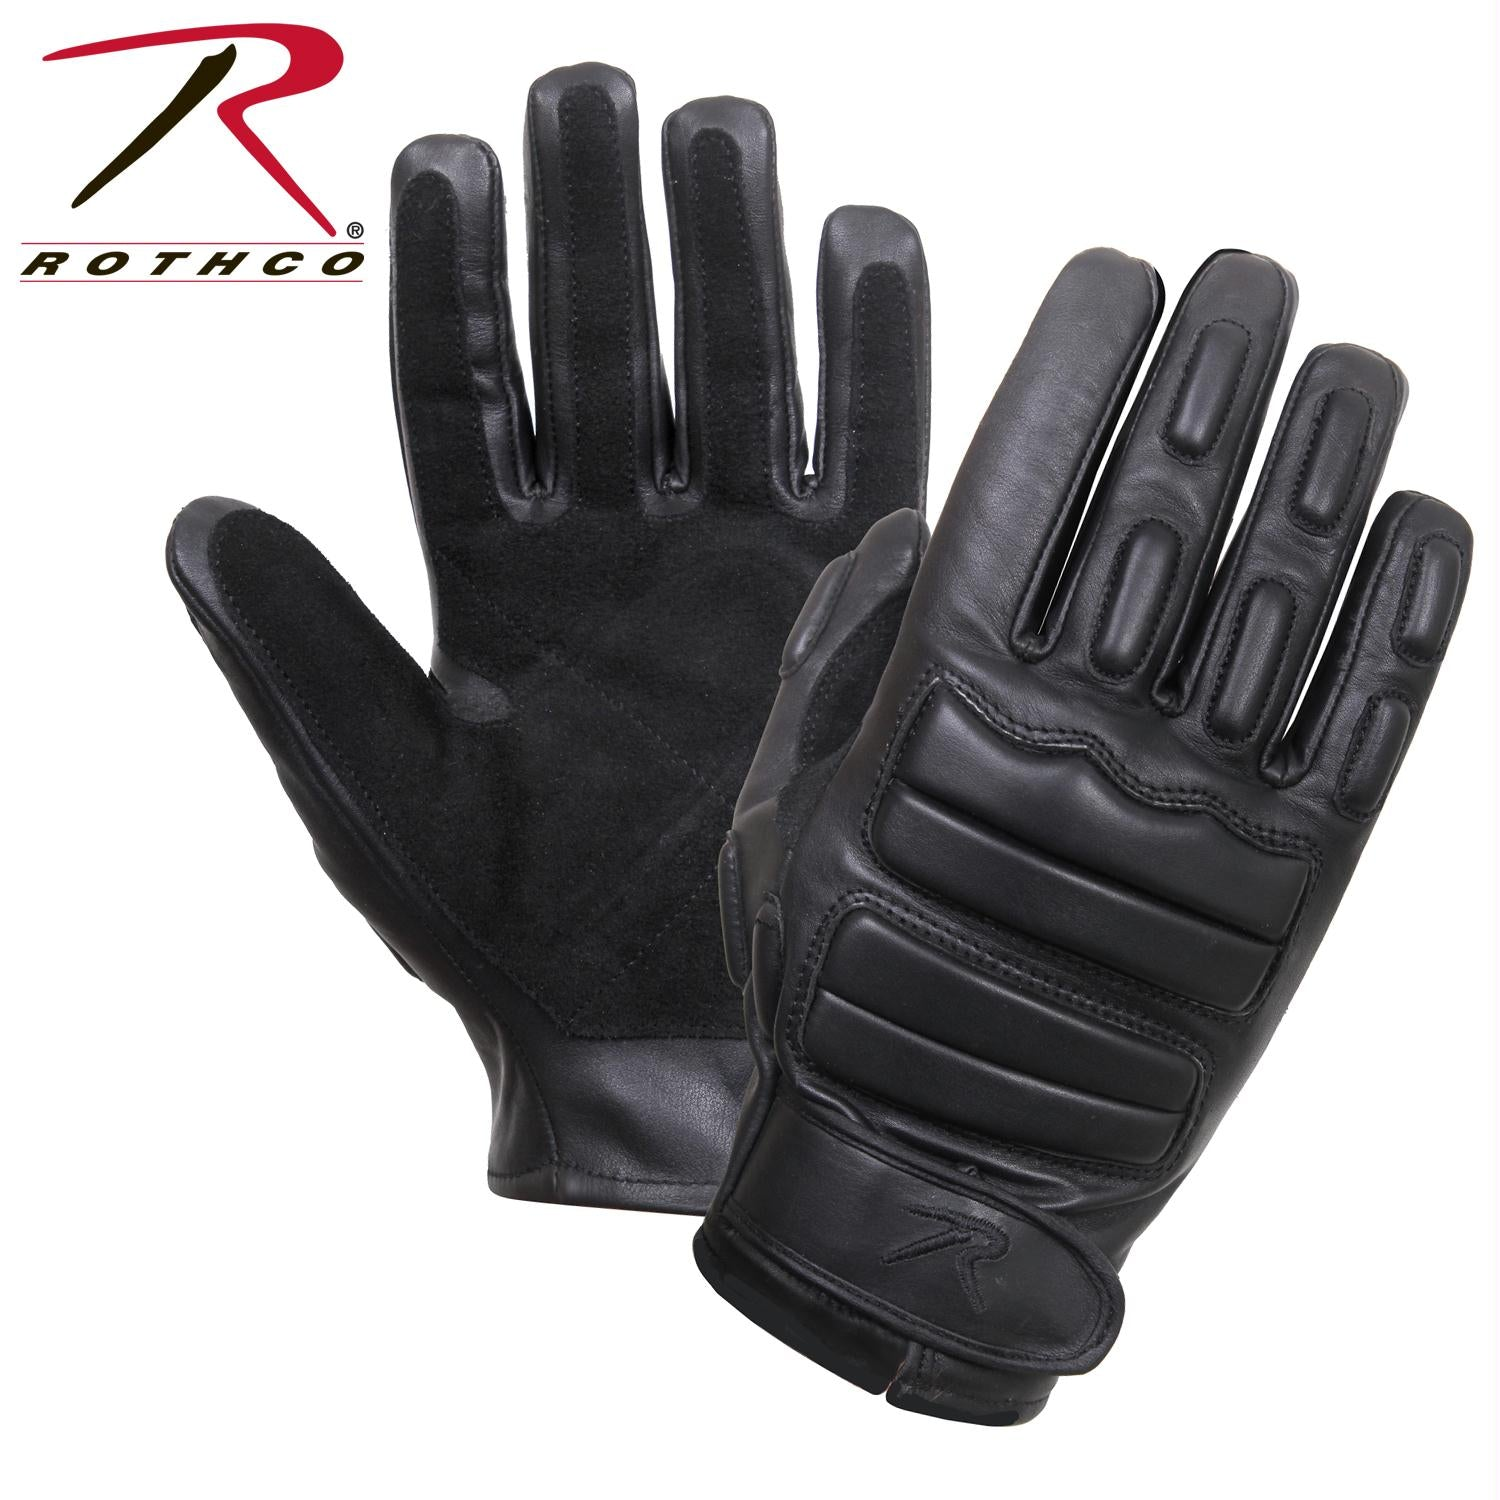 Rothco Padded Tactical Gloves - Black / S